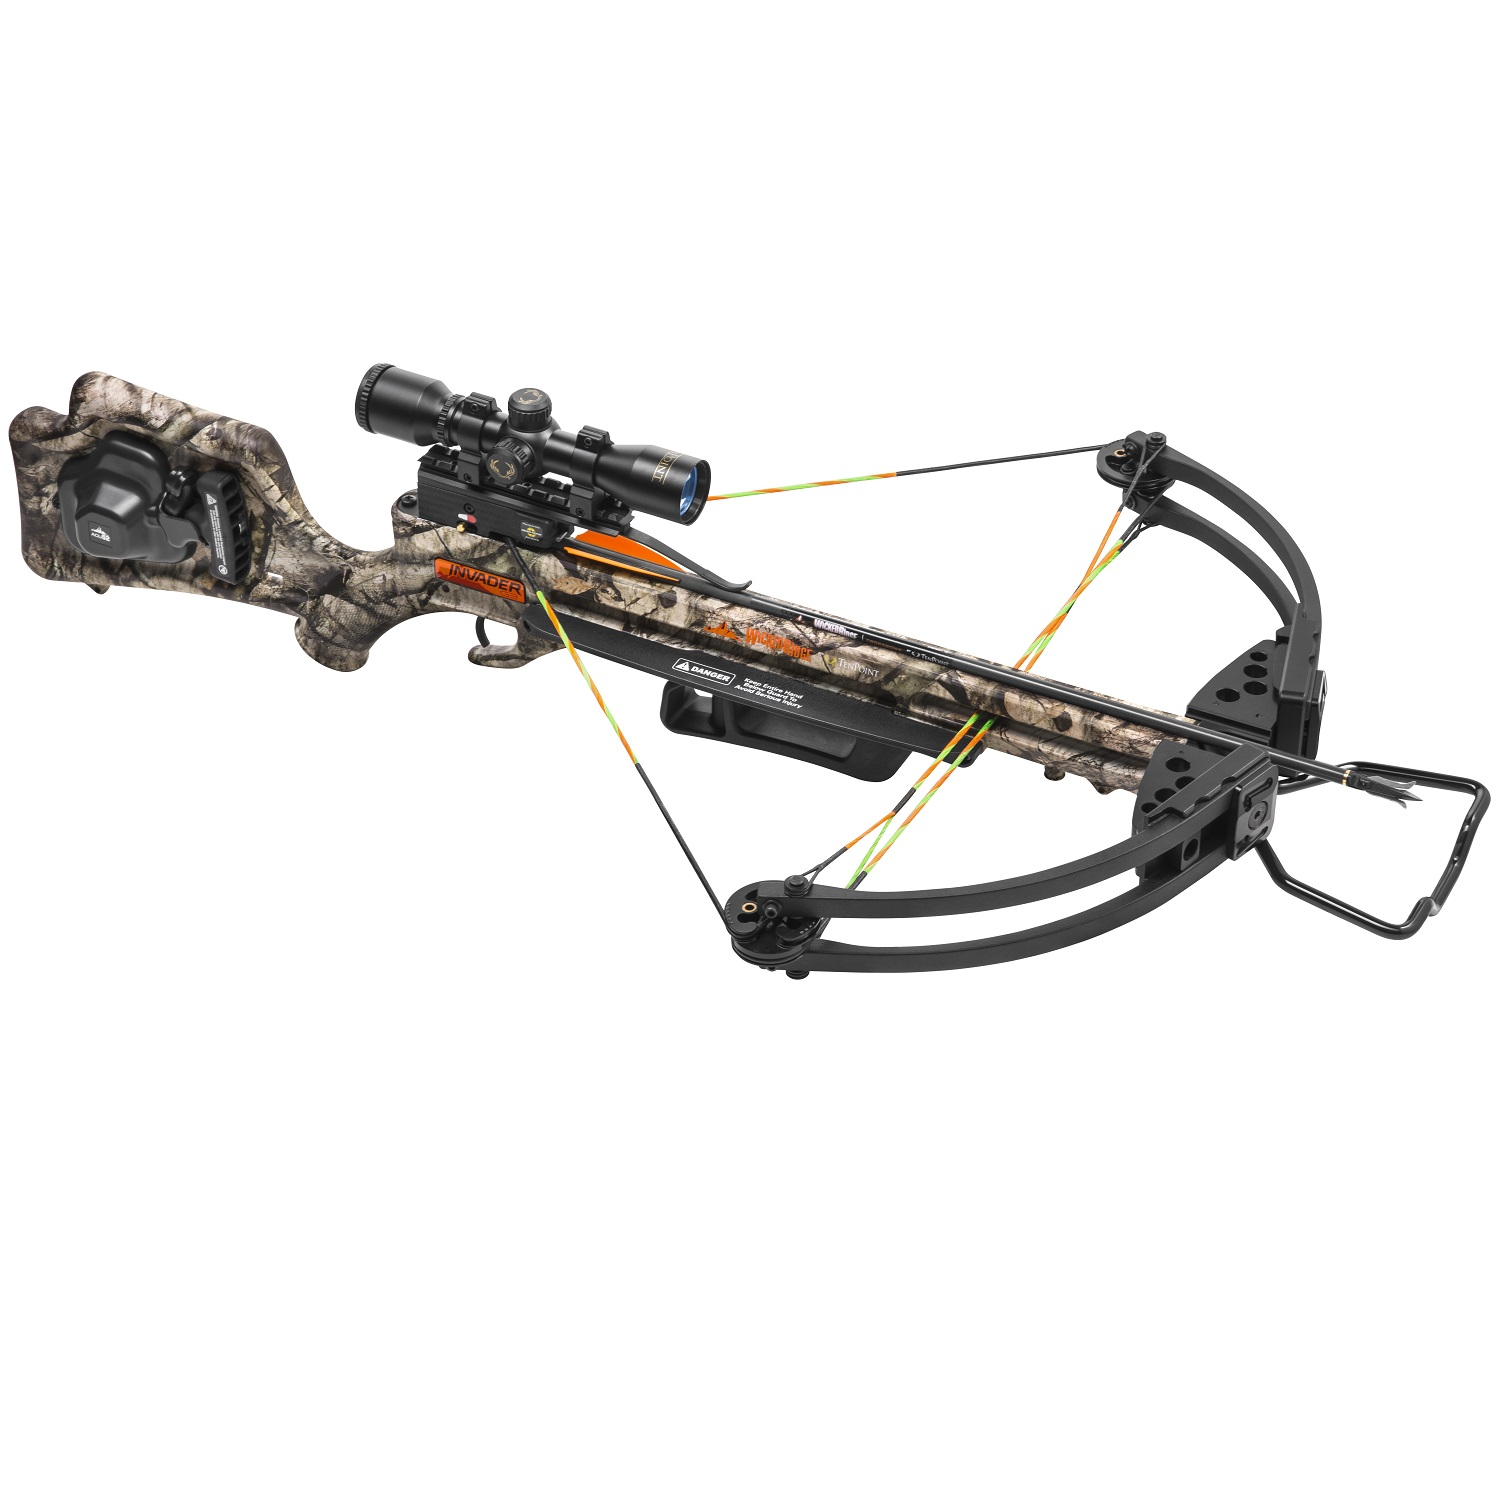 Wicked Ridge Invader G3 Crossbow Package SKU: WR15005-7536